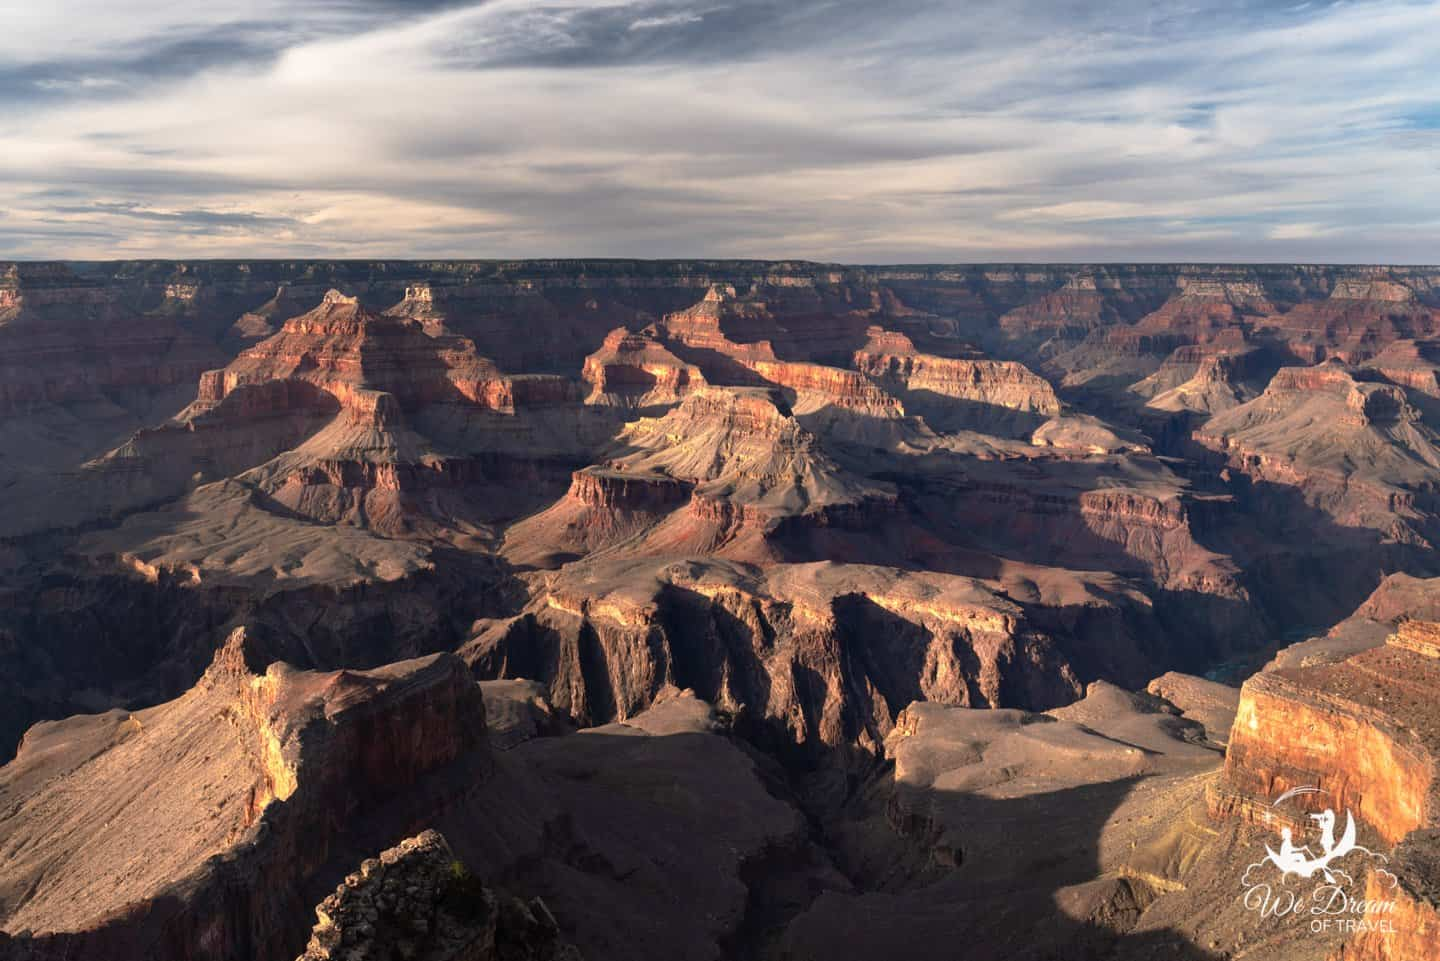 A photo from a recent daytrip to the Grand Canyon from the South Rim.